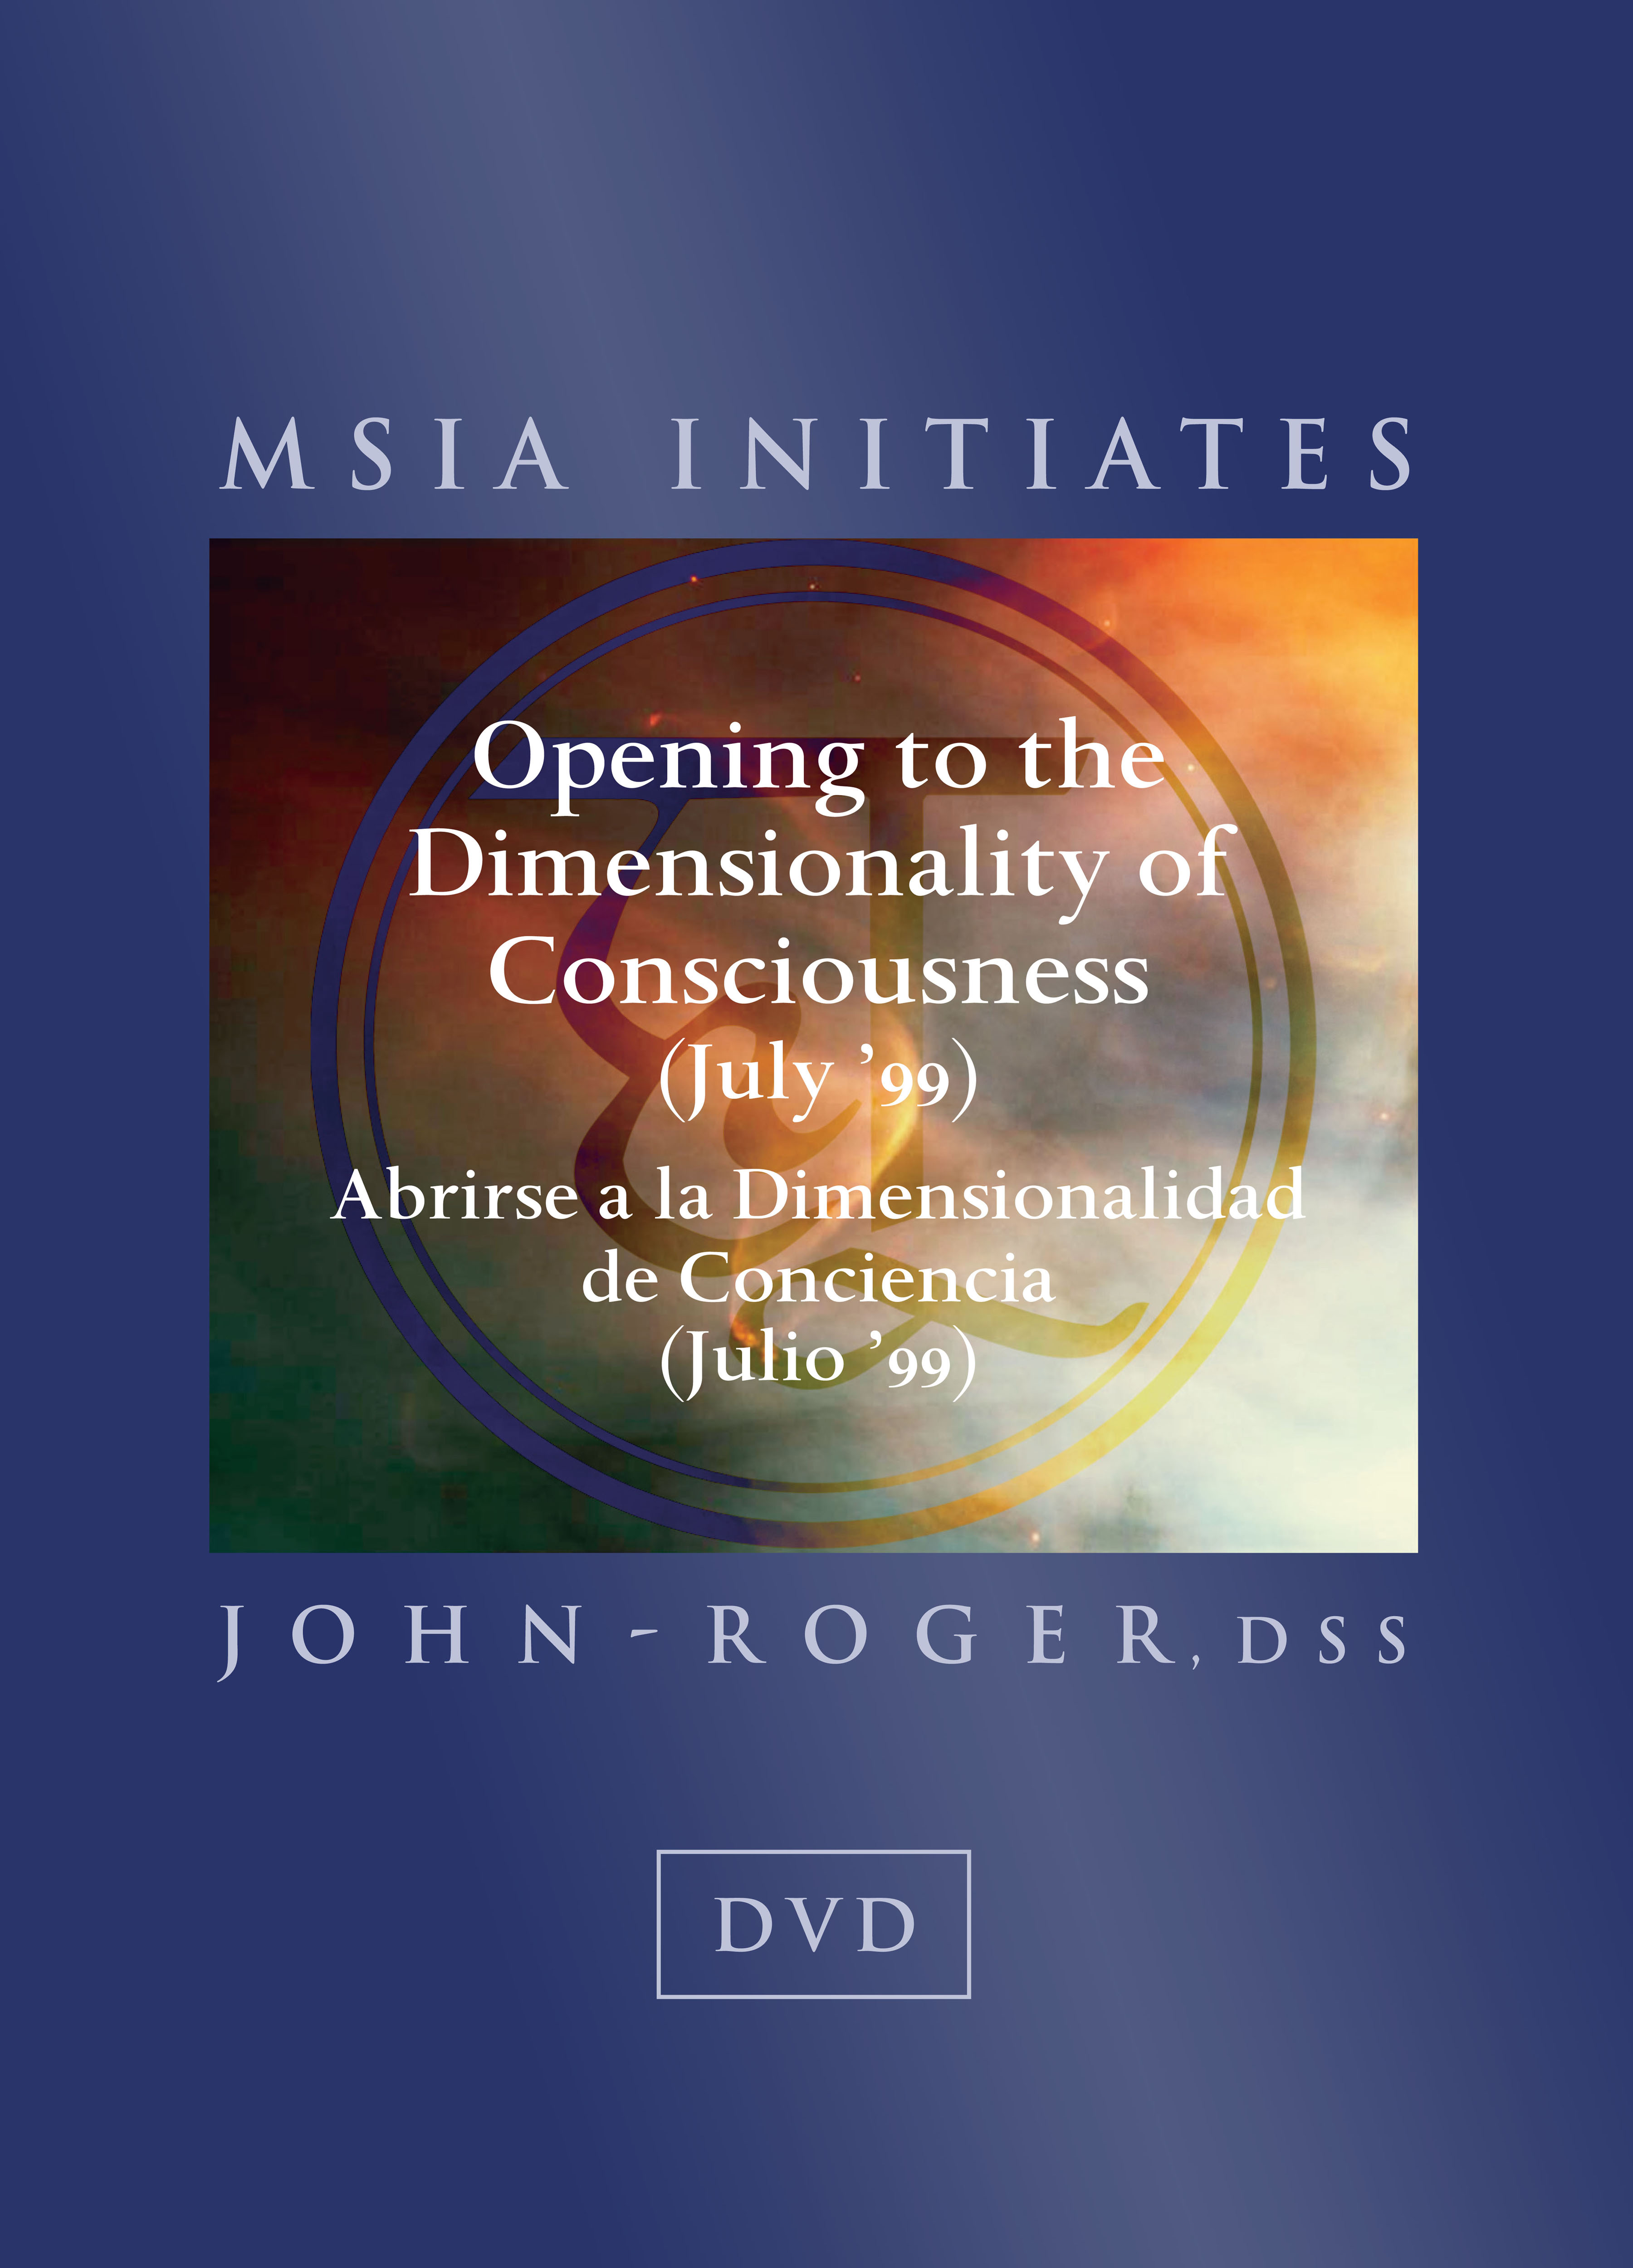 Opening to the Dimensionality of Consciousness  MP4